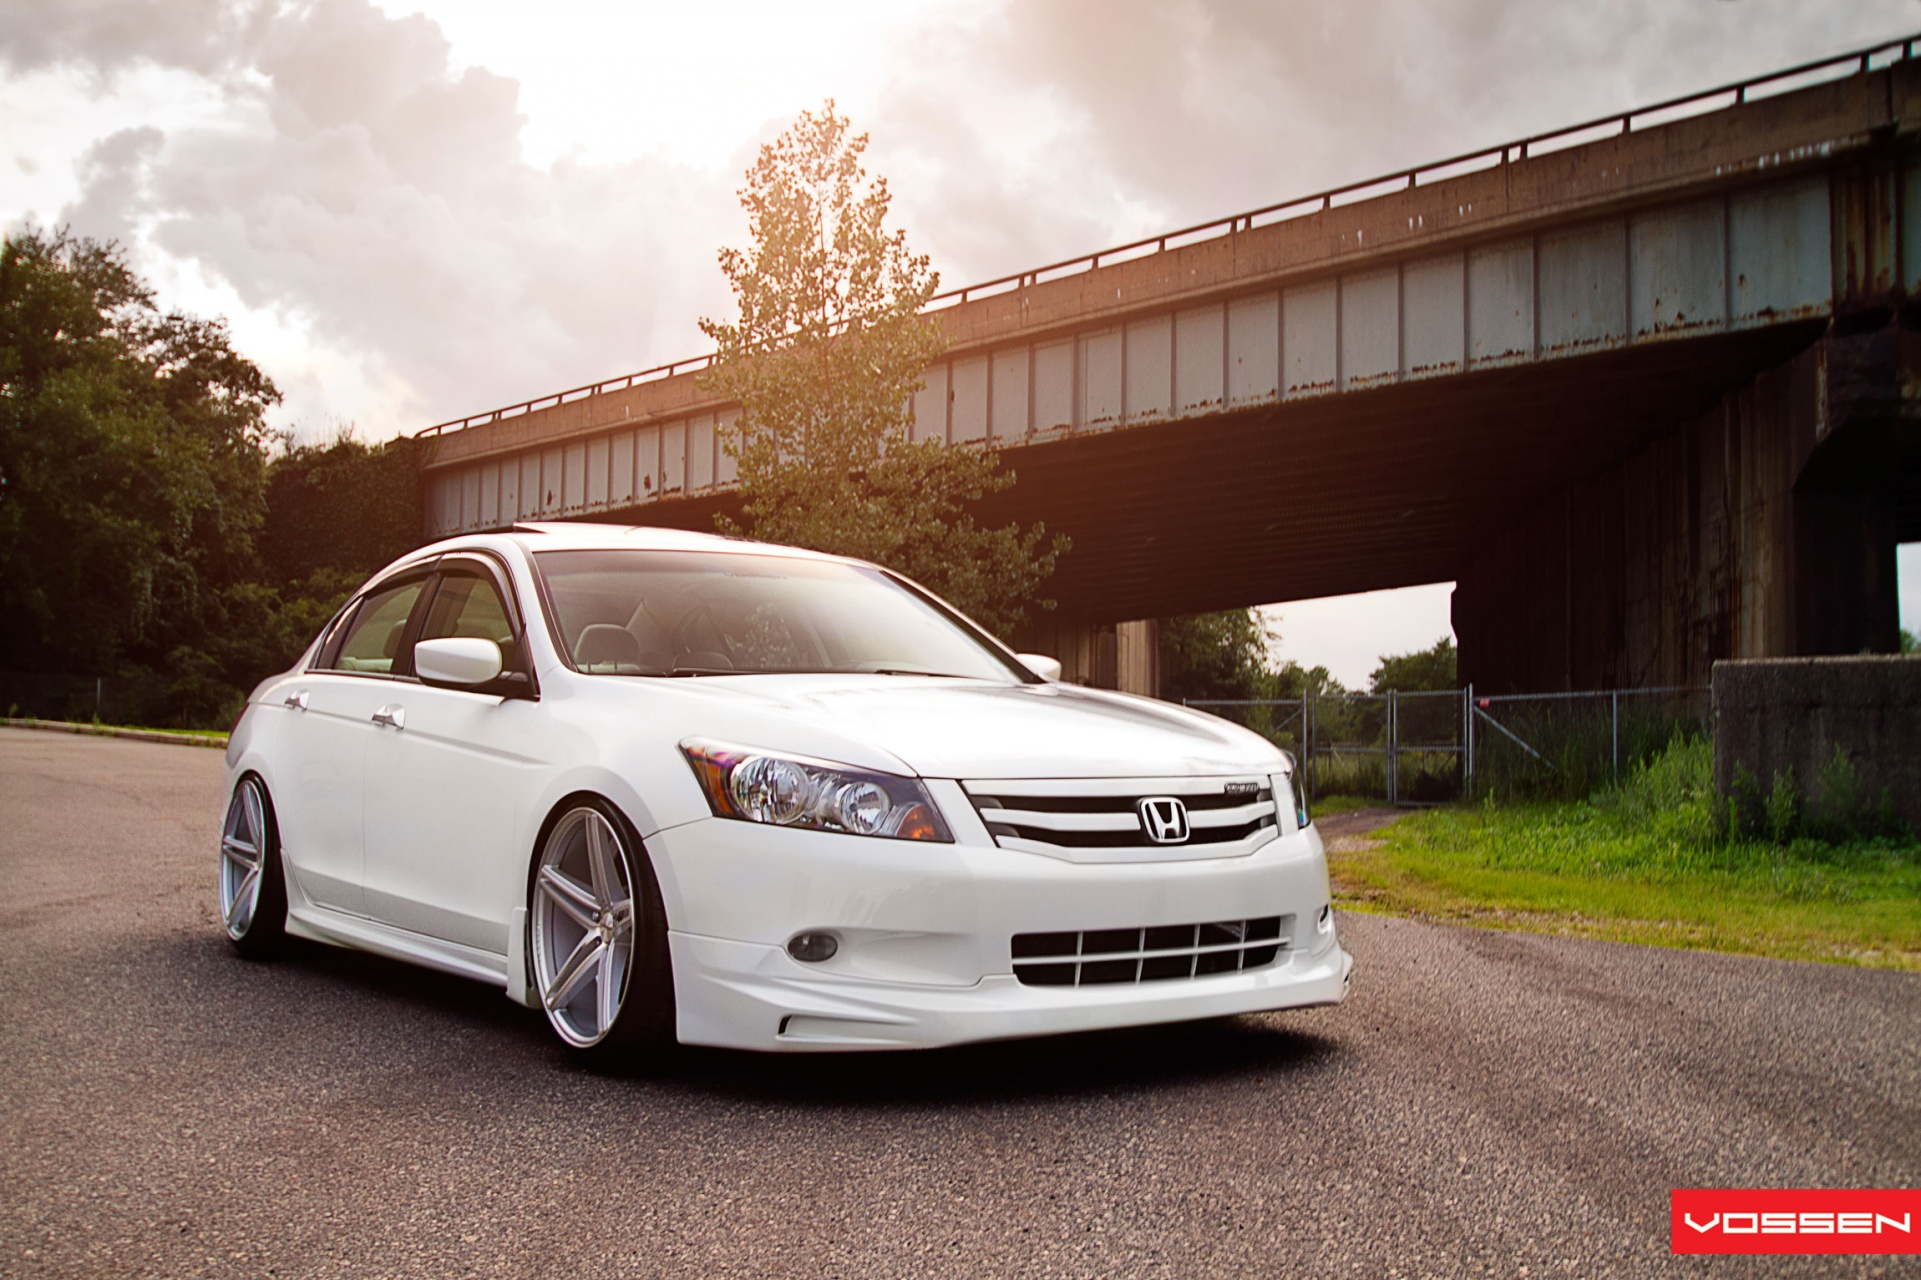 2010 Honda Accord Inspire Tuning G Wallpaper 1921x1280